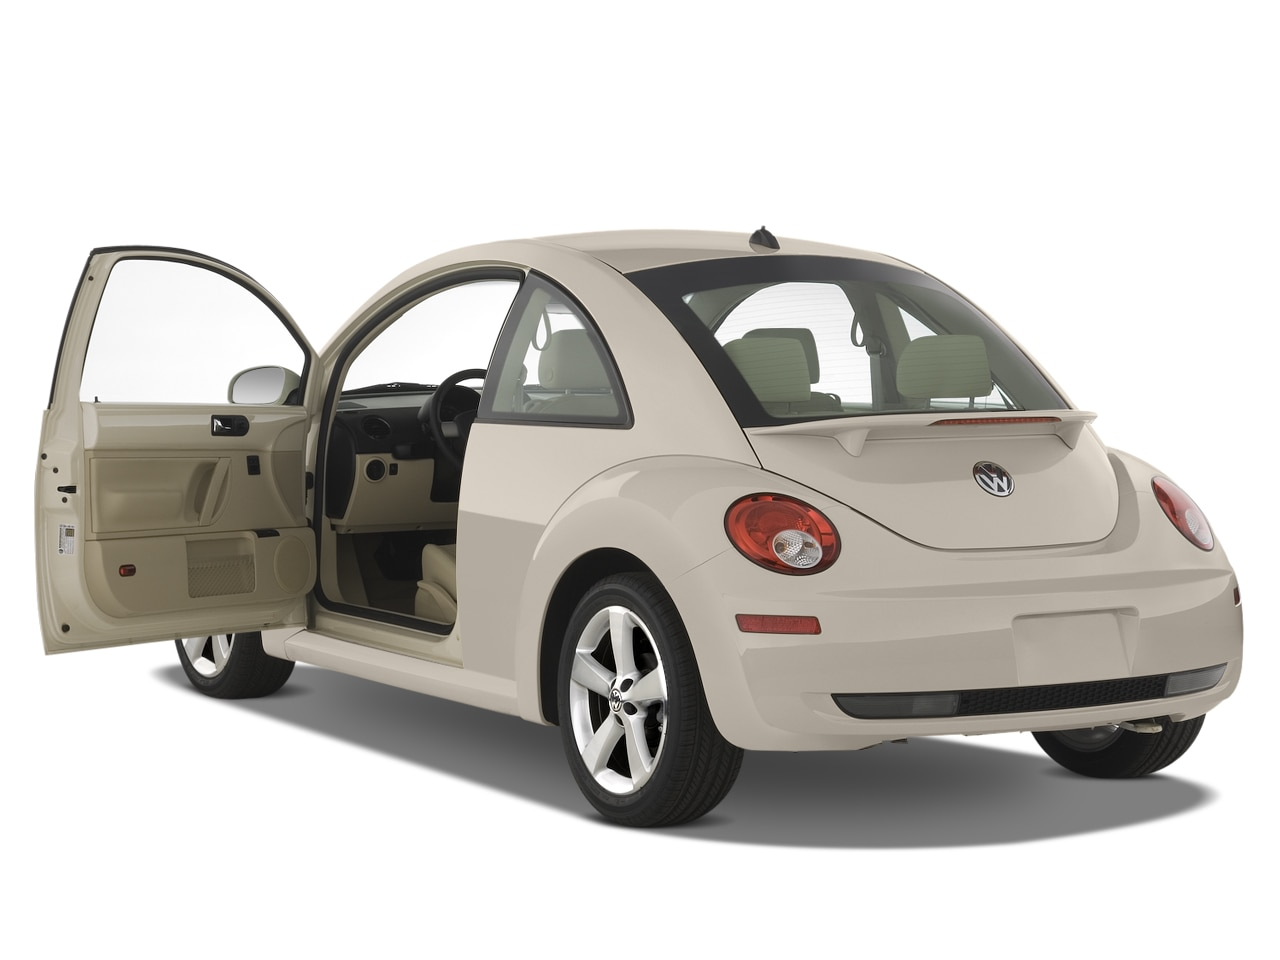 2008 Volkswagen Beetle Owners Manual